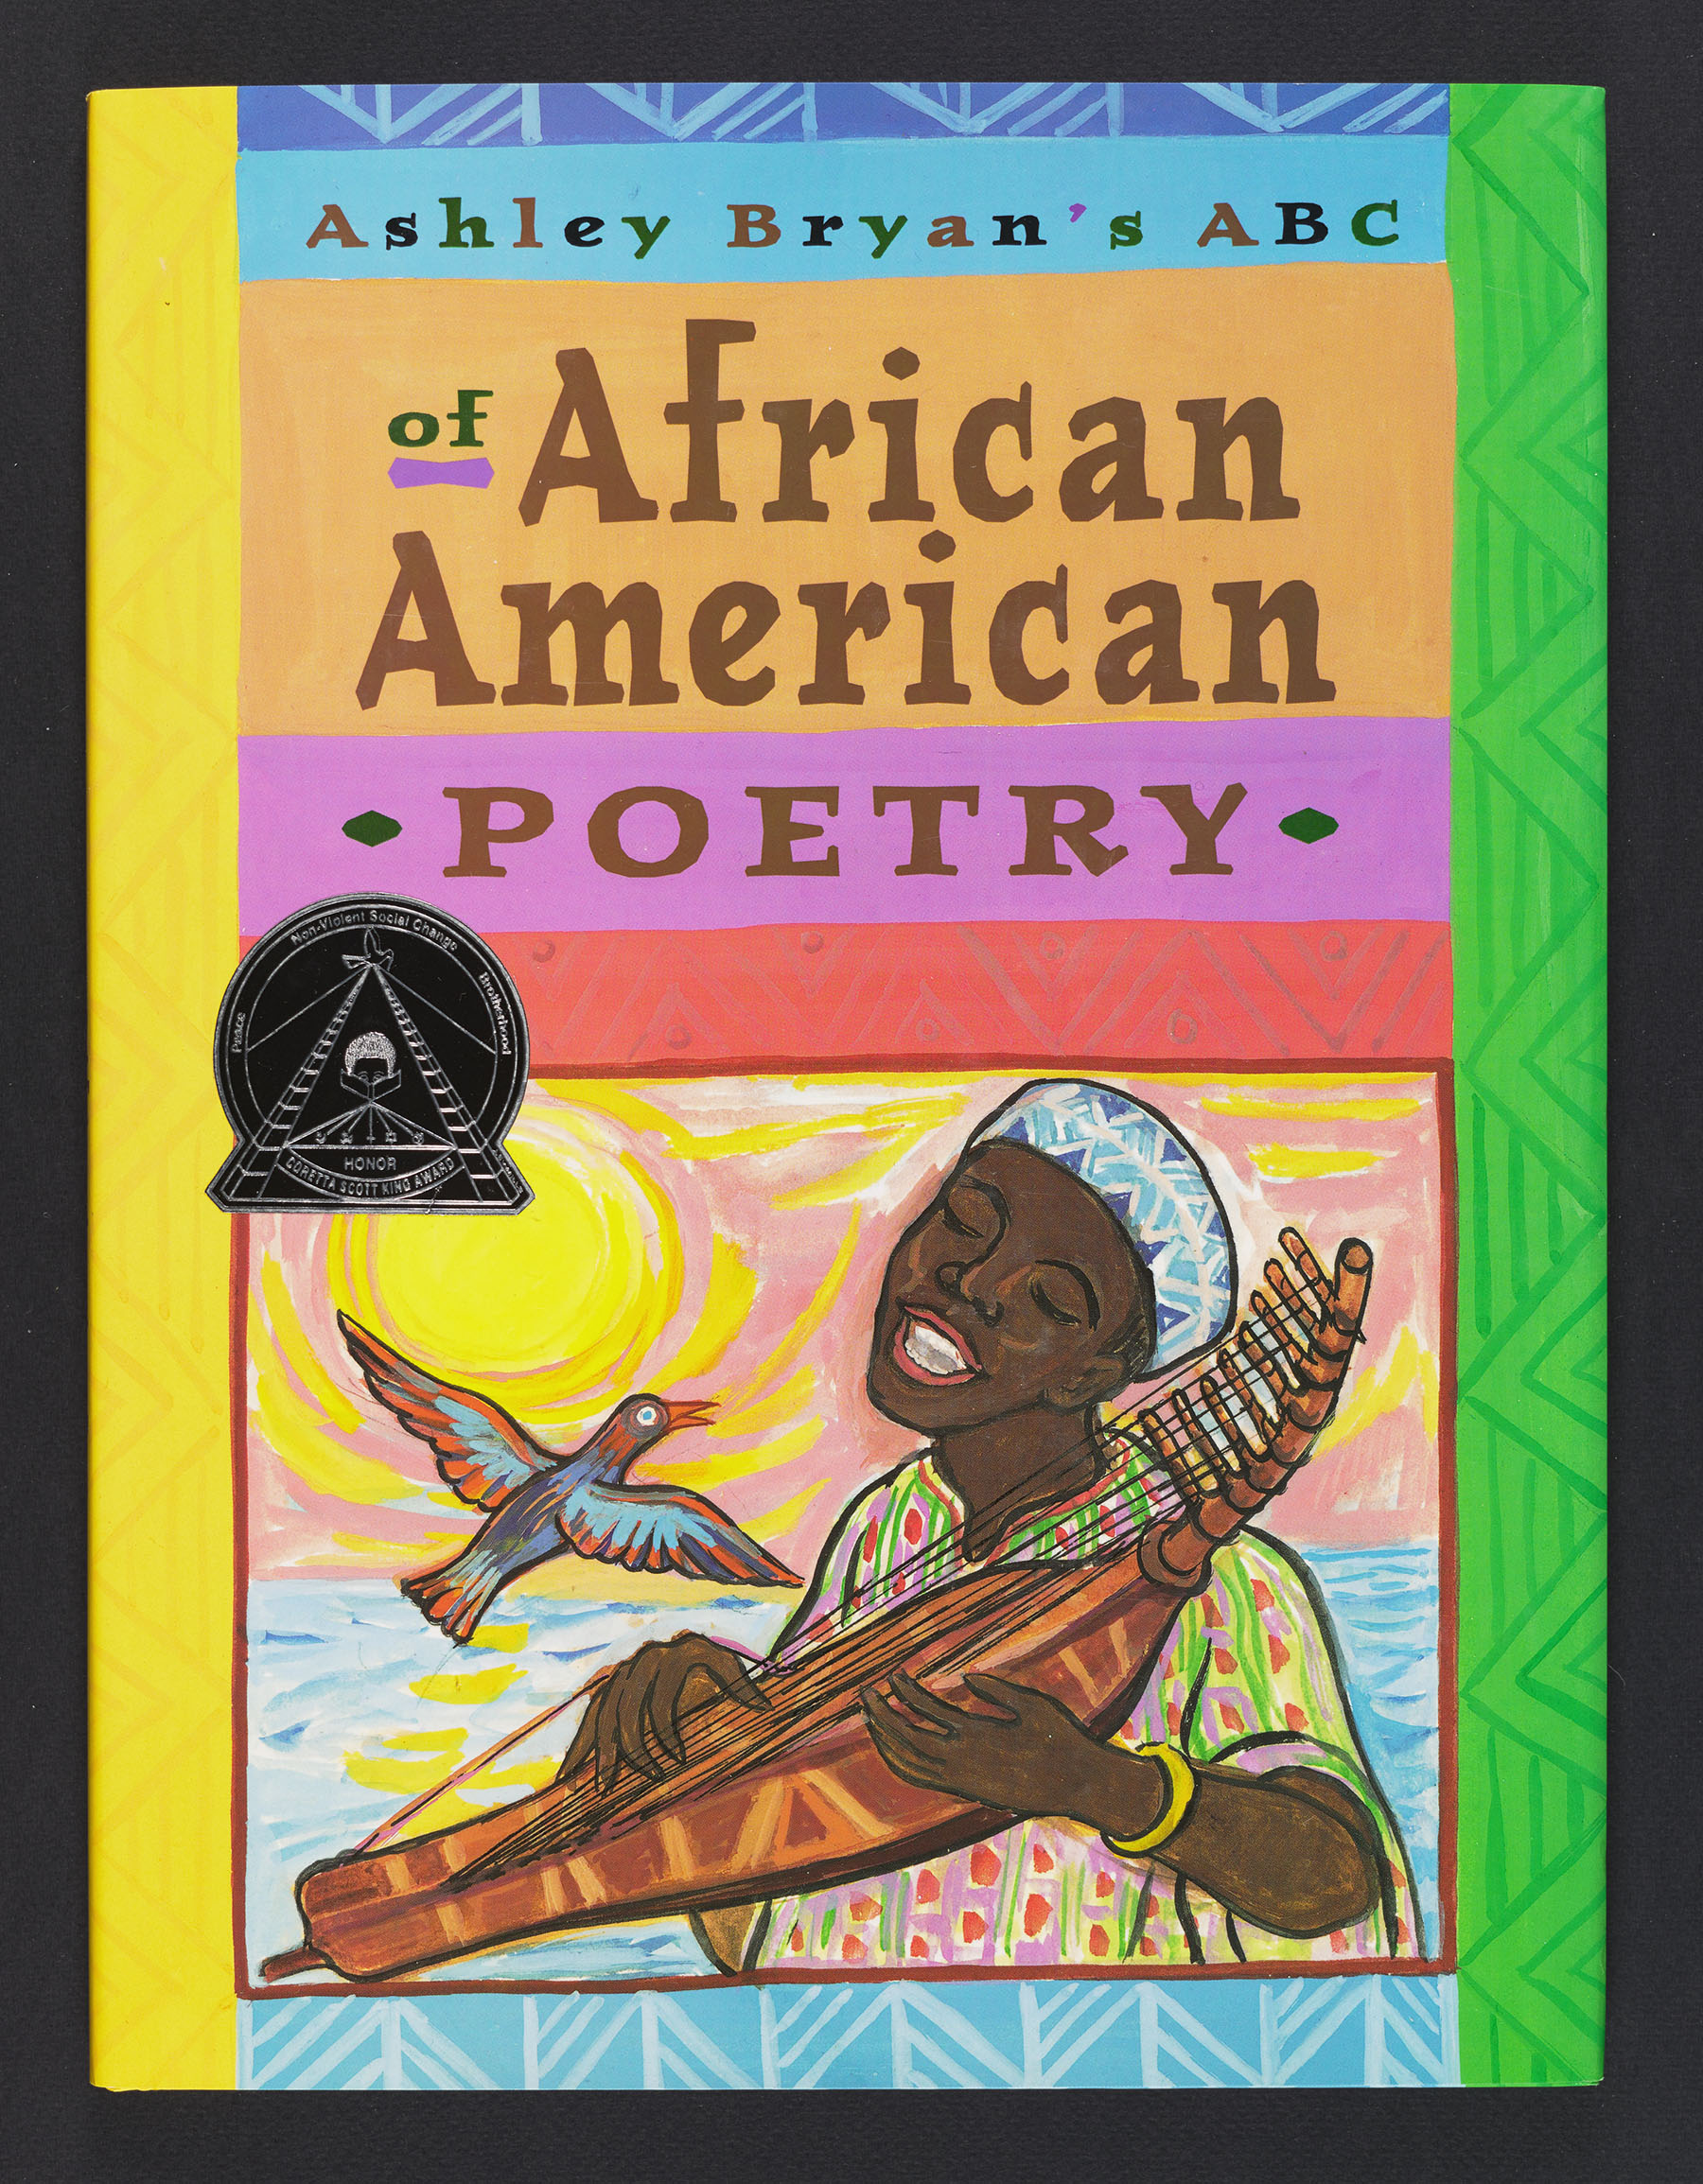 Cover art for Ashley Bryan's ABC of African American Poetry